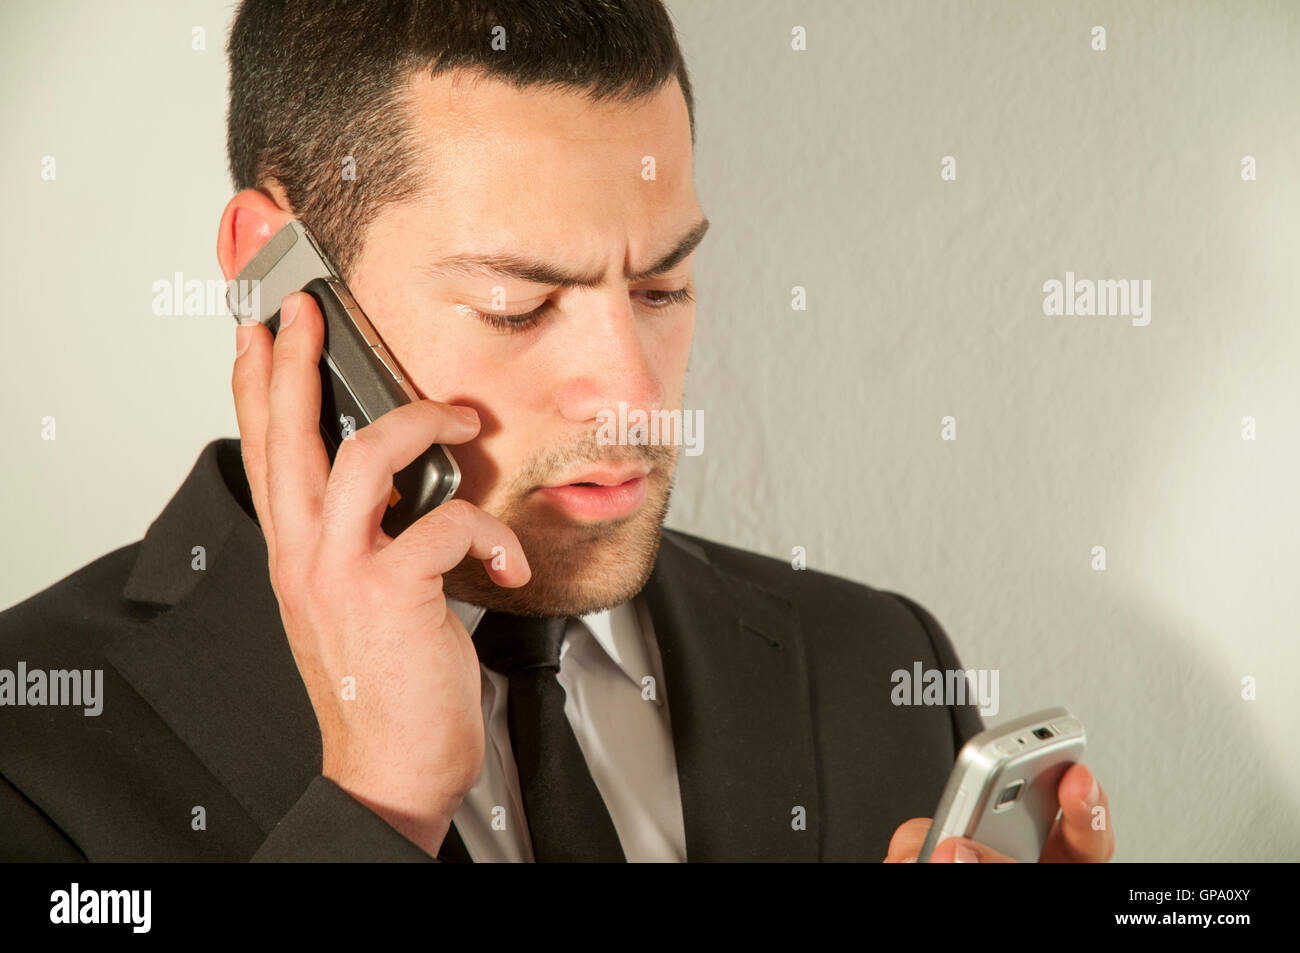 Young man using two mobiles phones. - Stock Image